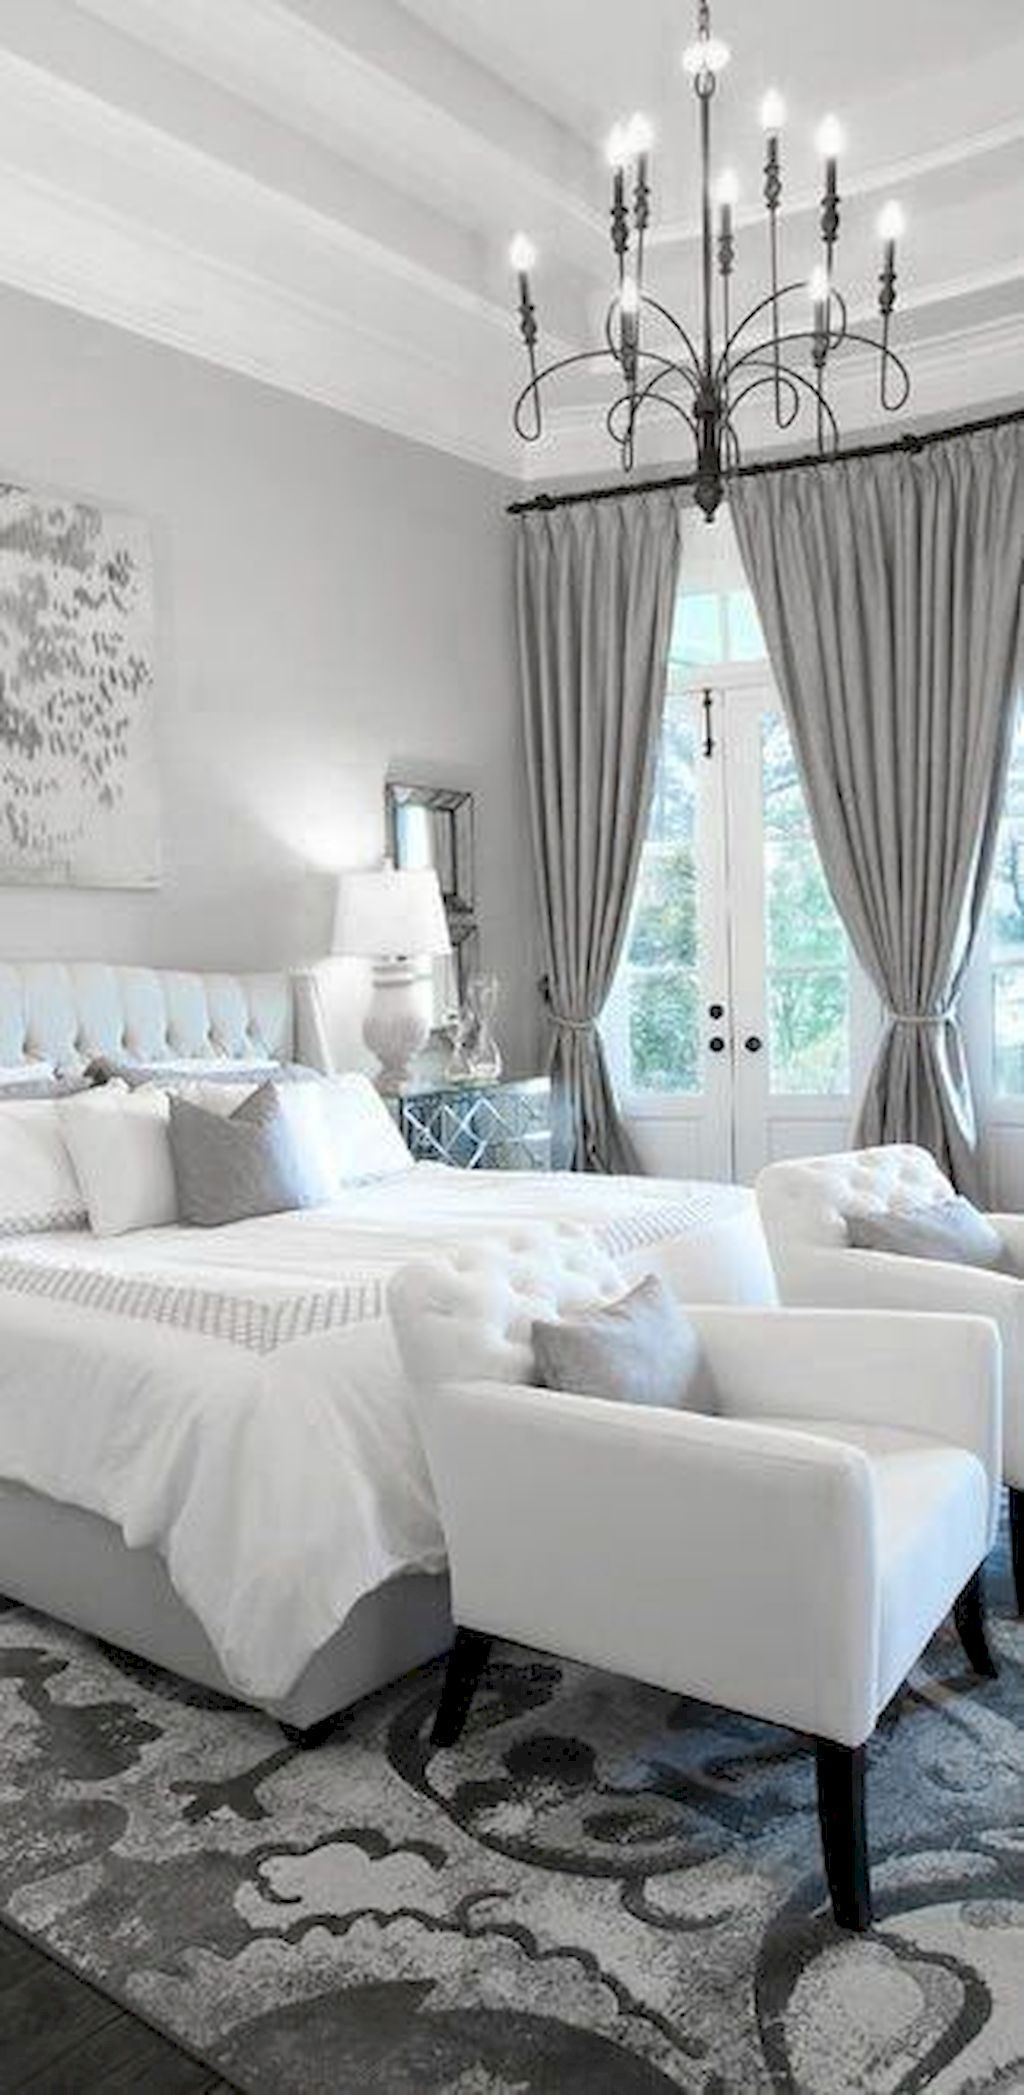 Master bedroom grey and white  Stunning small master bedroom ideas   Small master bedroom